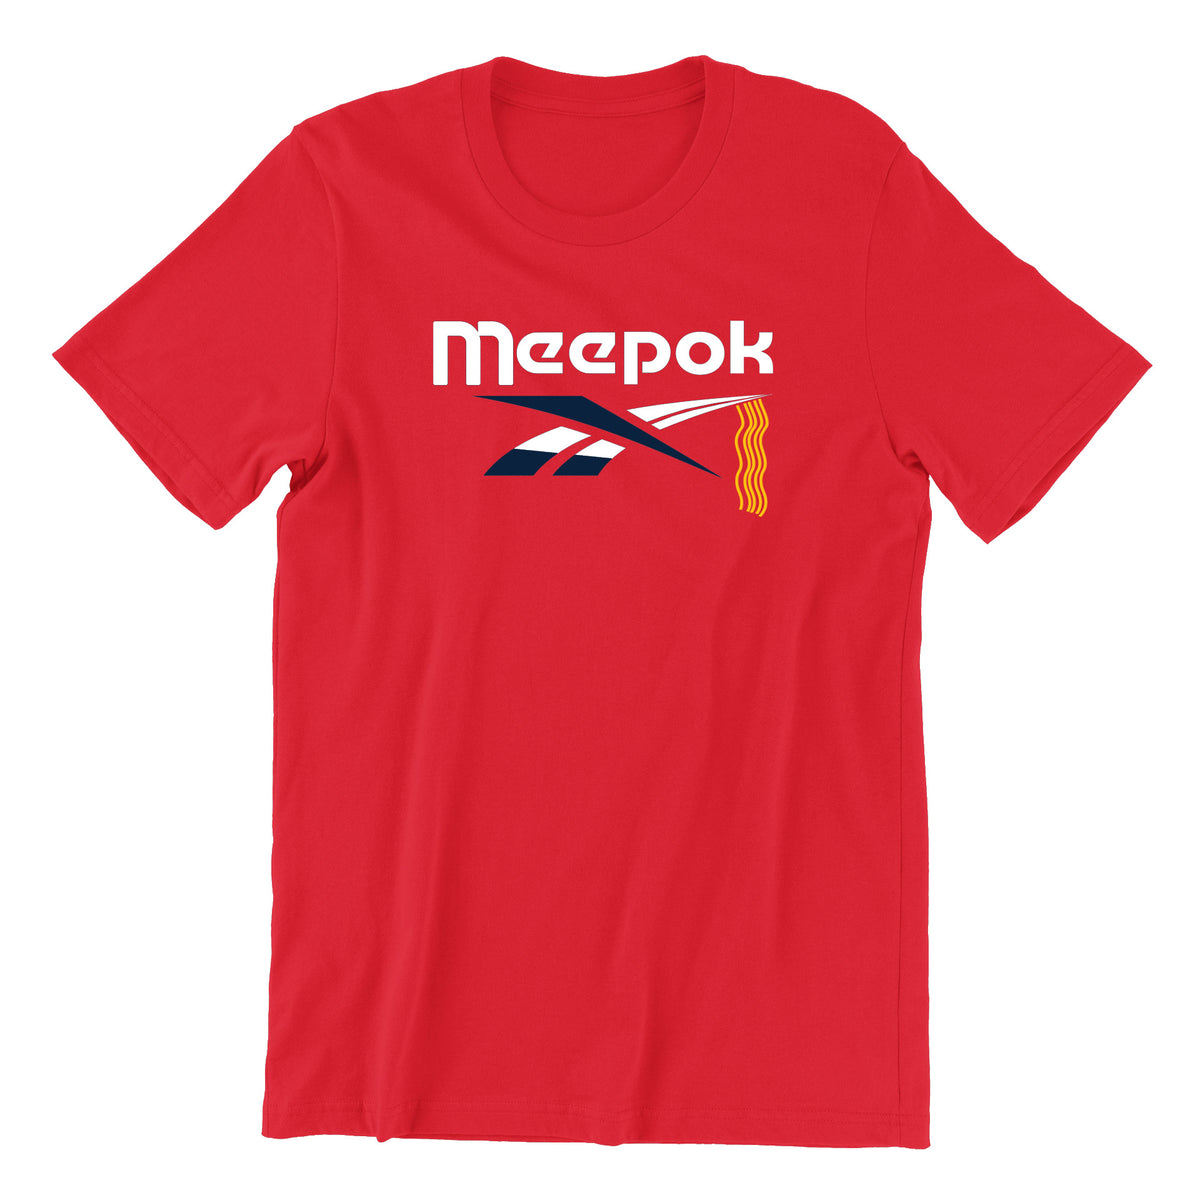 Mee Pok Short Sleeve T-shirt